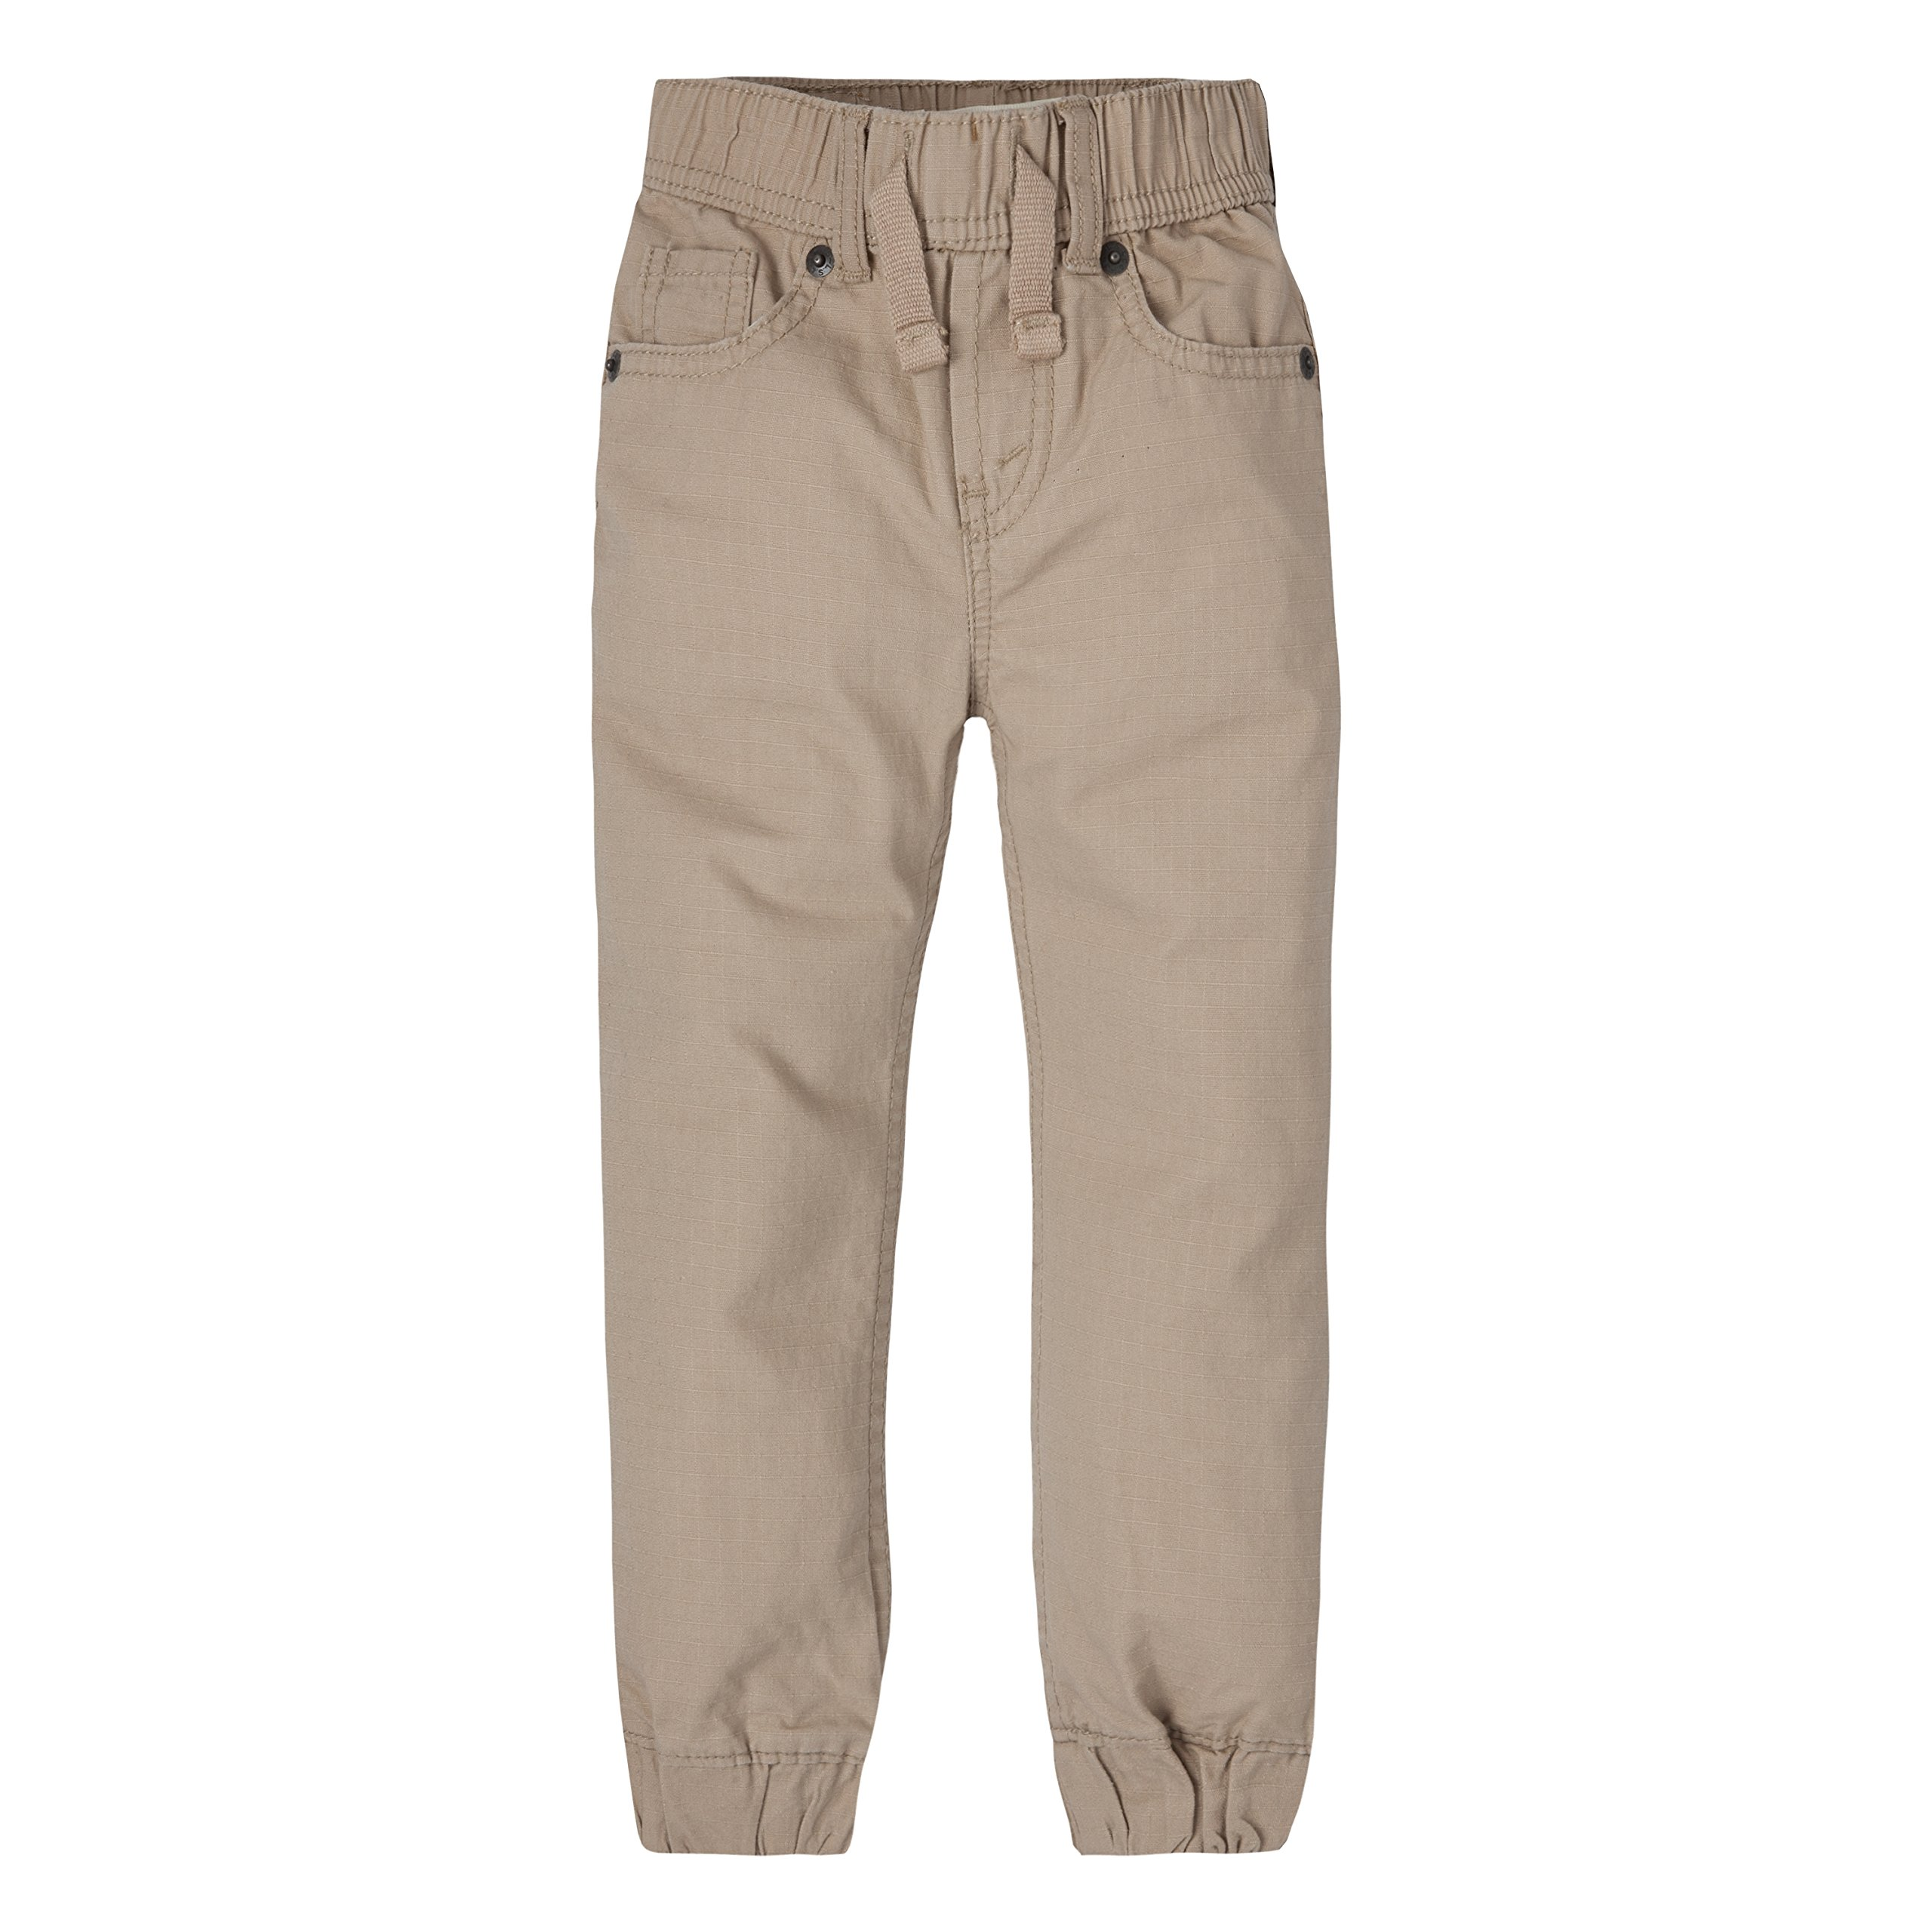 Levi's Toddler Boys' Joggers, True Chino, 3T